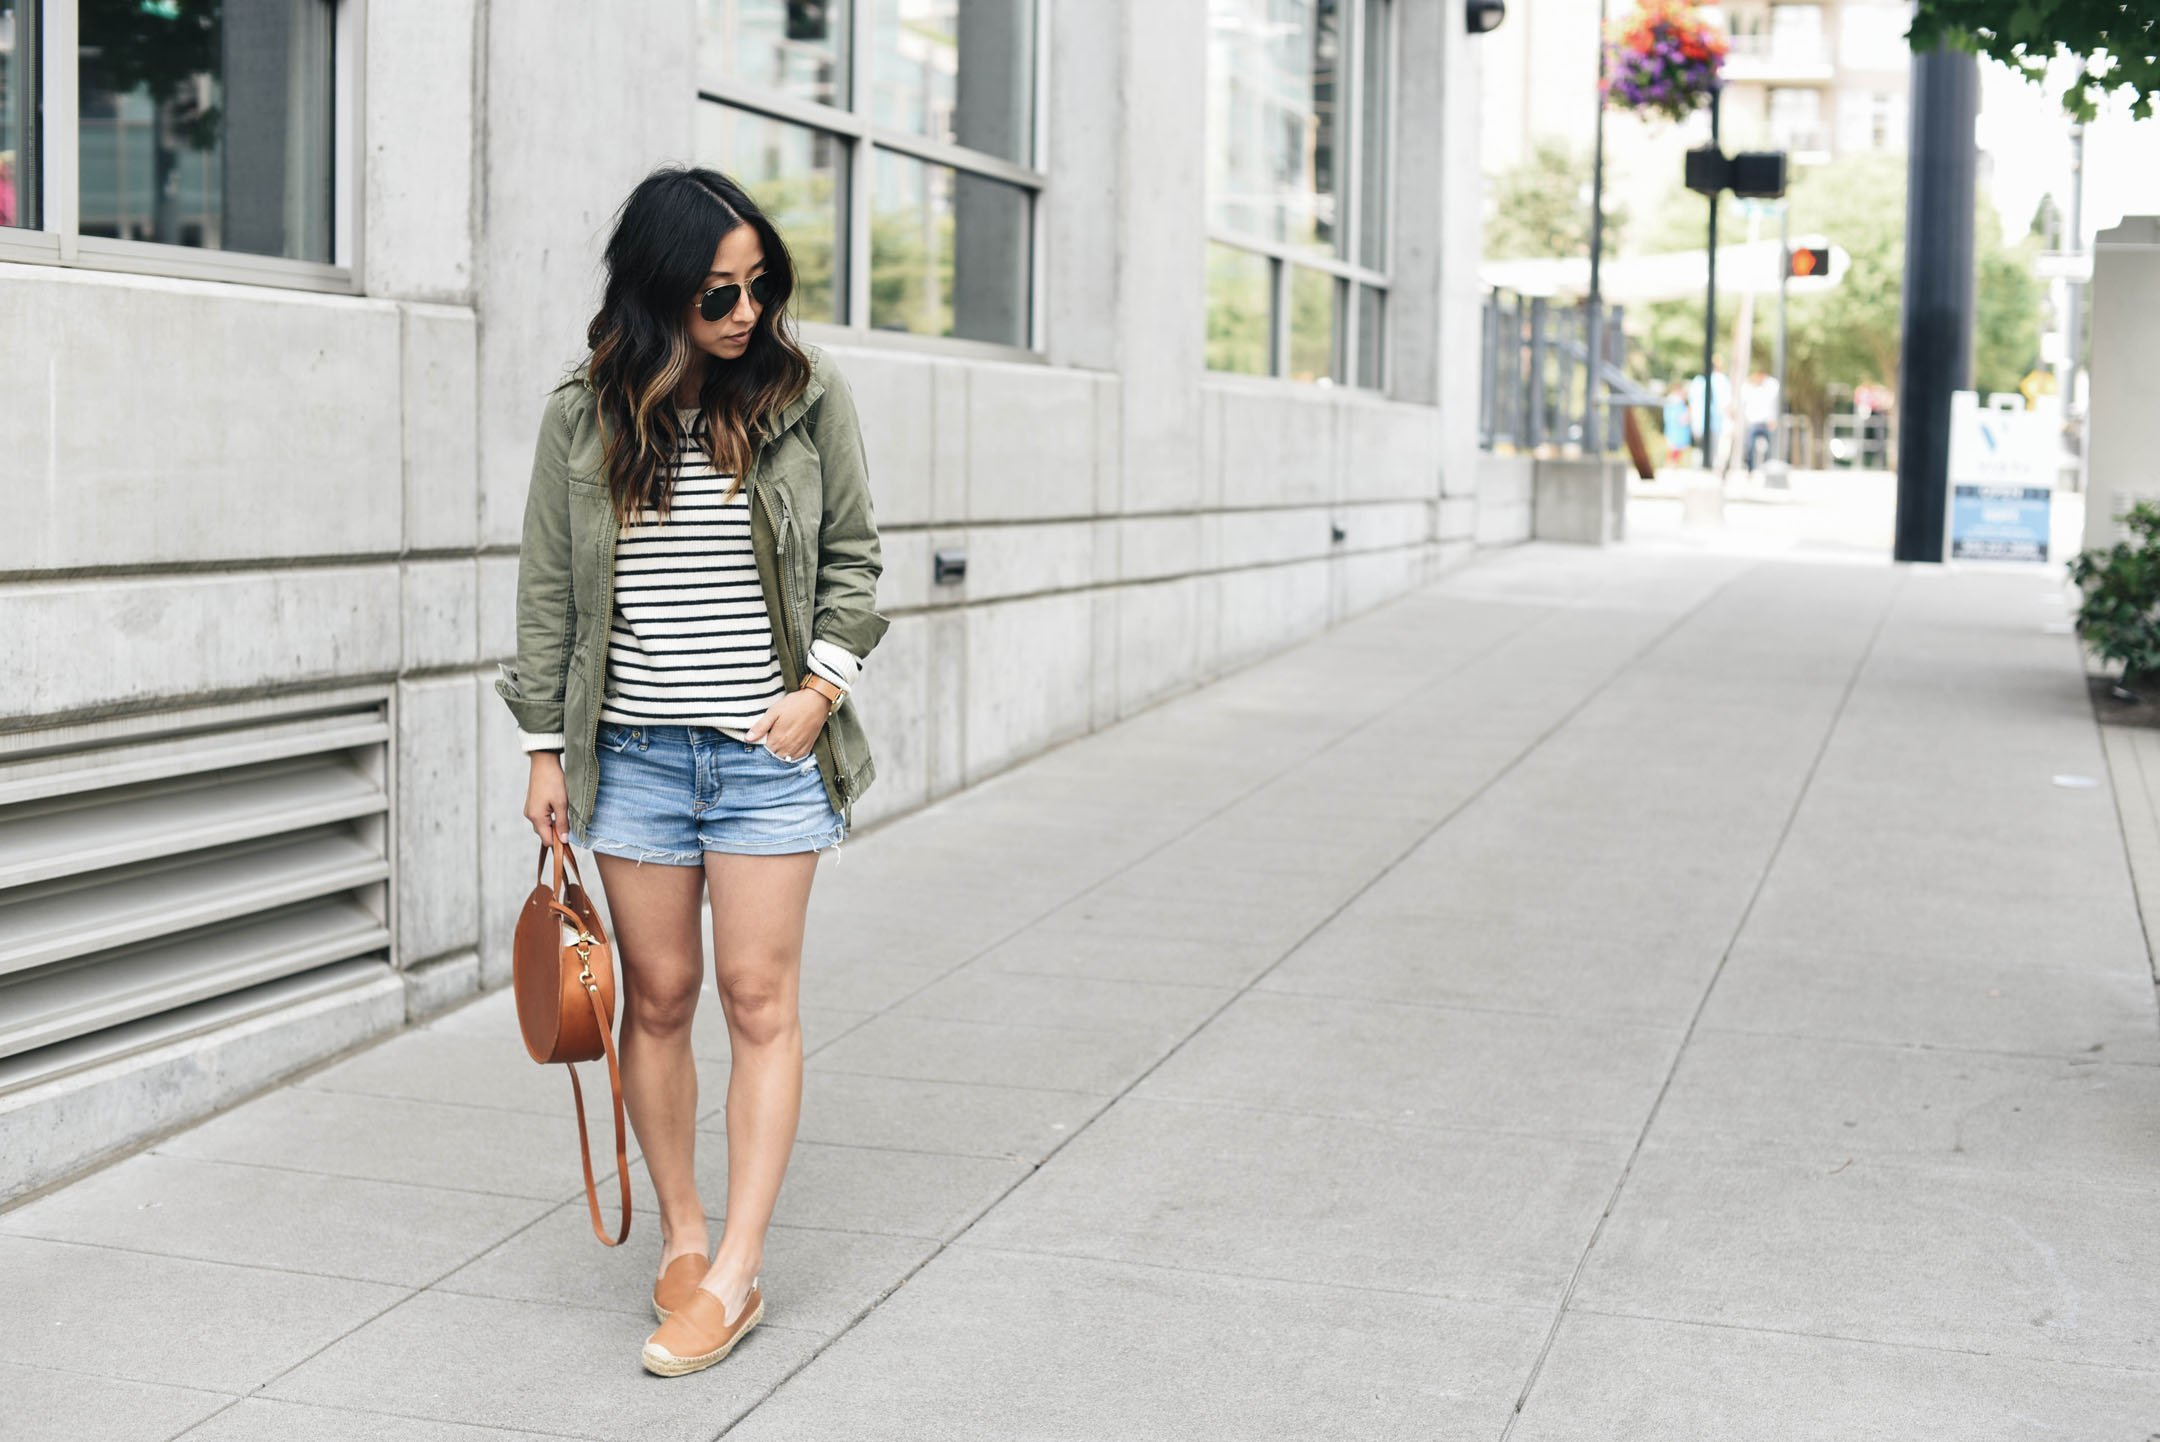 Sweater, utility jacket, and shorts